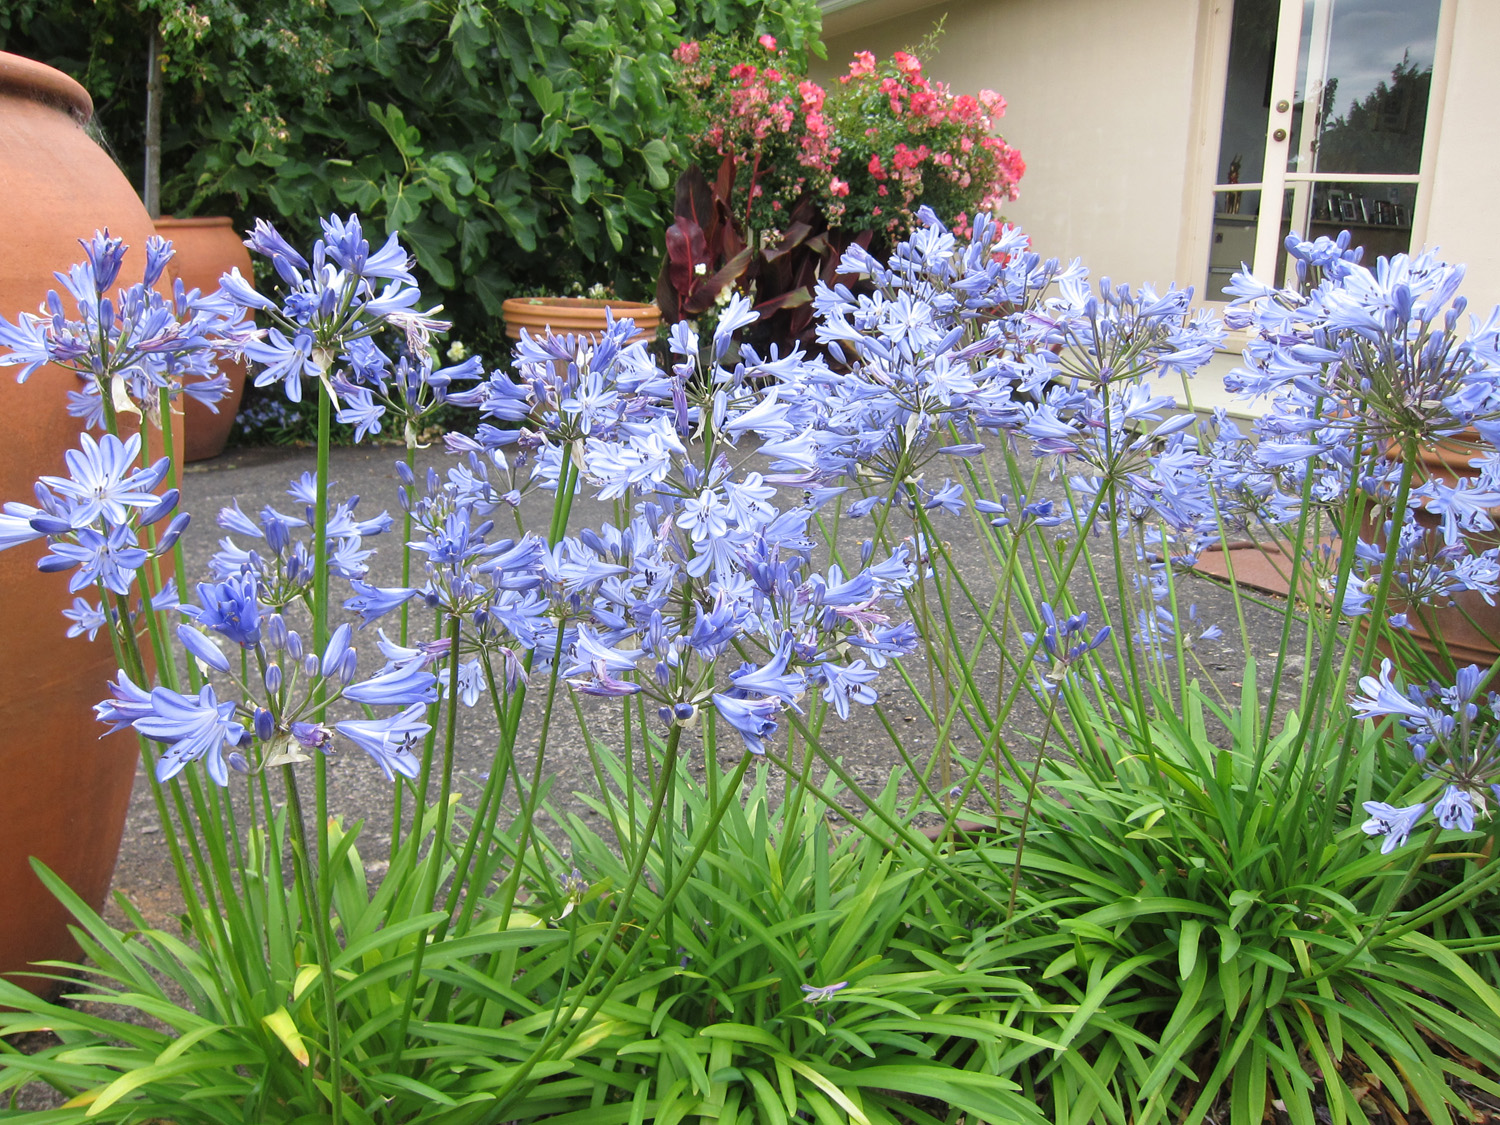 Bluestorm Agapanthus on patio